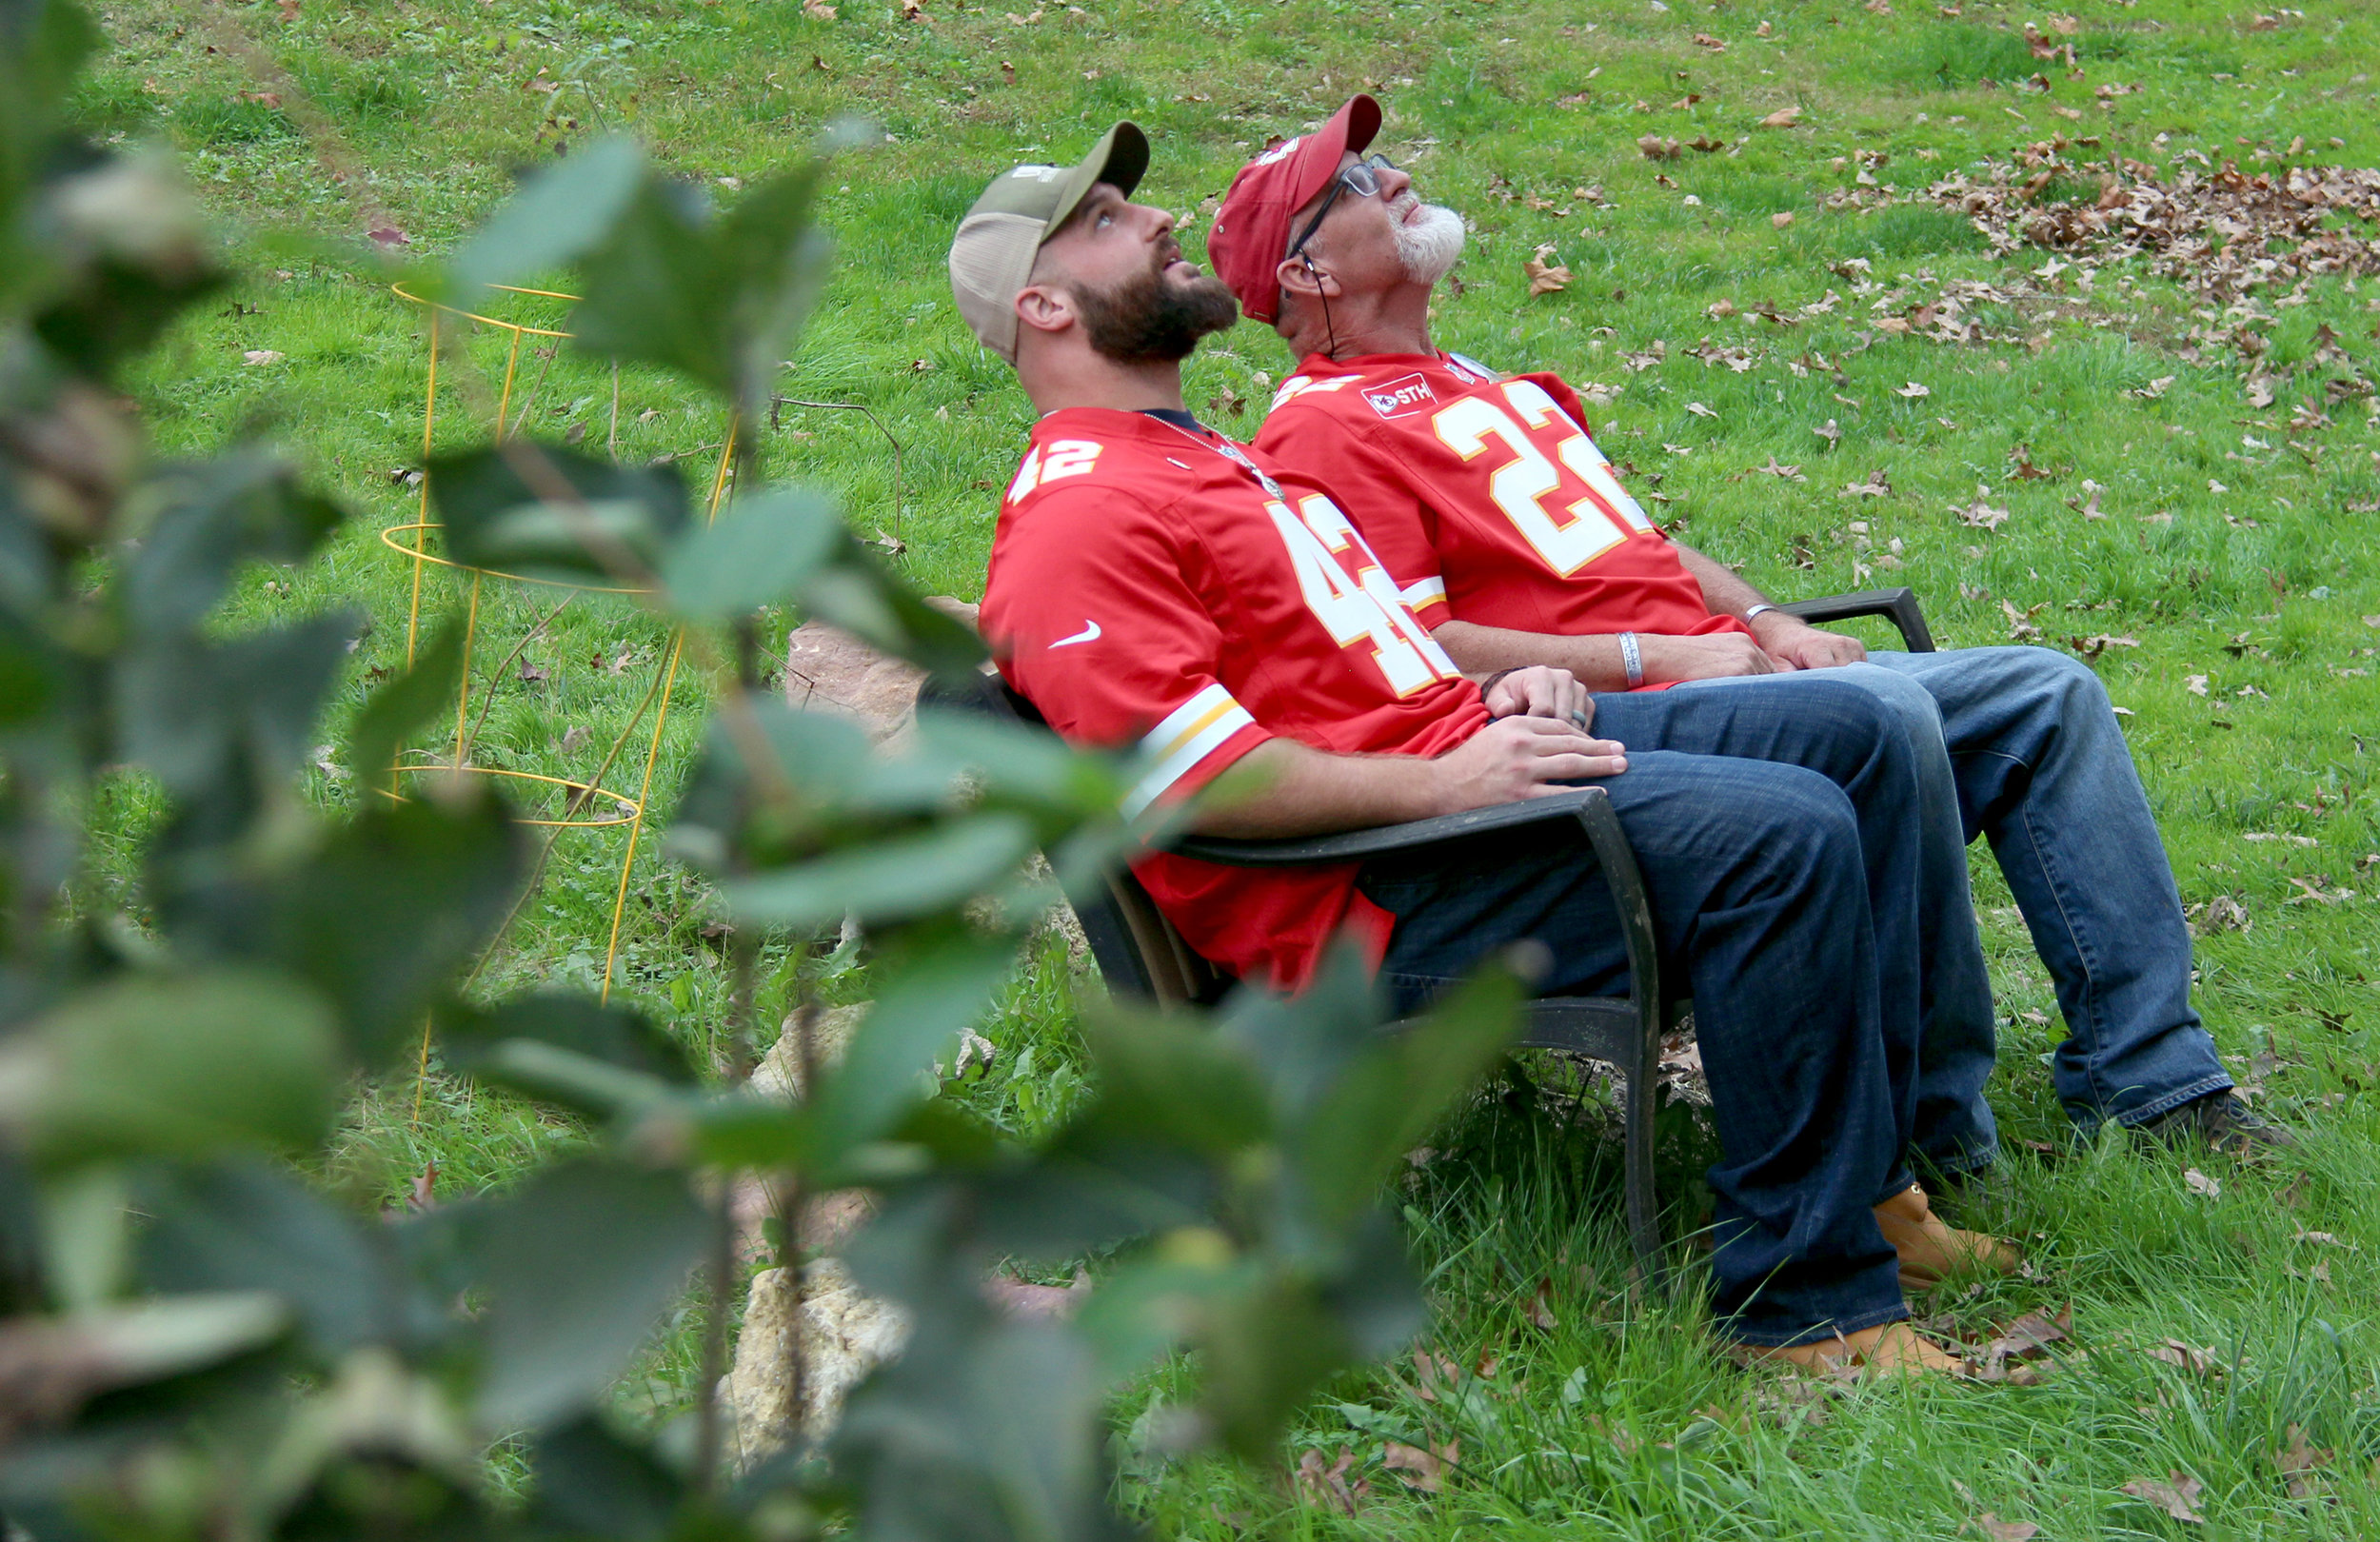 ROSS MARTIN/Citizen photo Kansas City Chiefs fullback Anthony Sherman, left, and Patrick Farnan look up at a tree planted in the backyard of the Farnans' home in Weston, Mo. Patrick Farnan told Sherman that he planted the tree 11 years ago after son Colby Farnan was killed while serving in the U.S. Army.